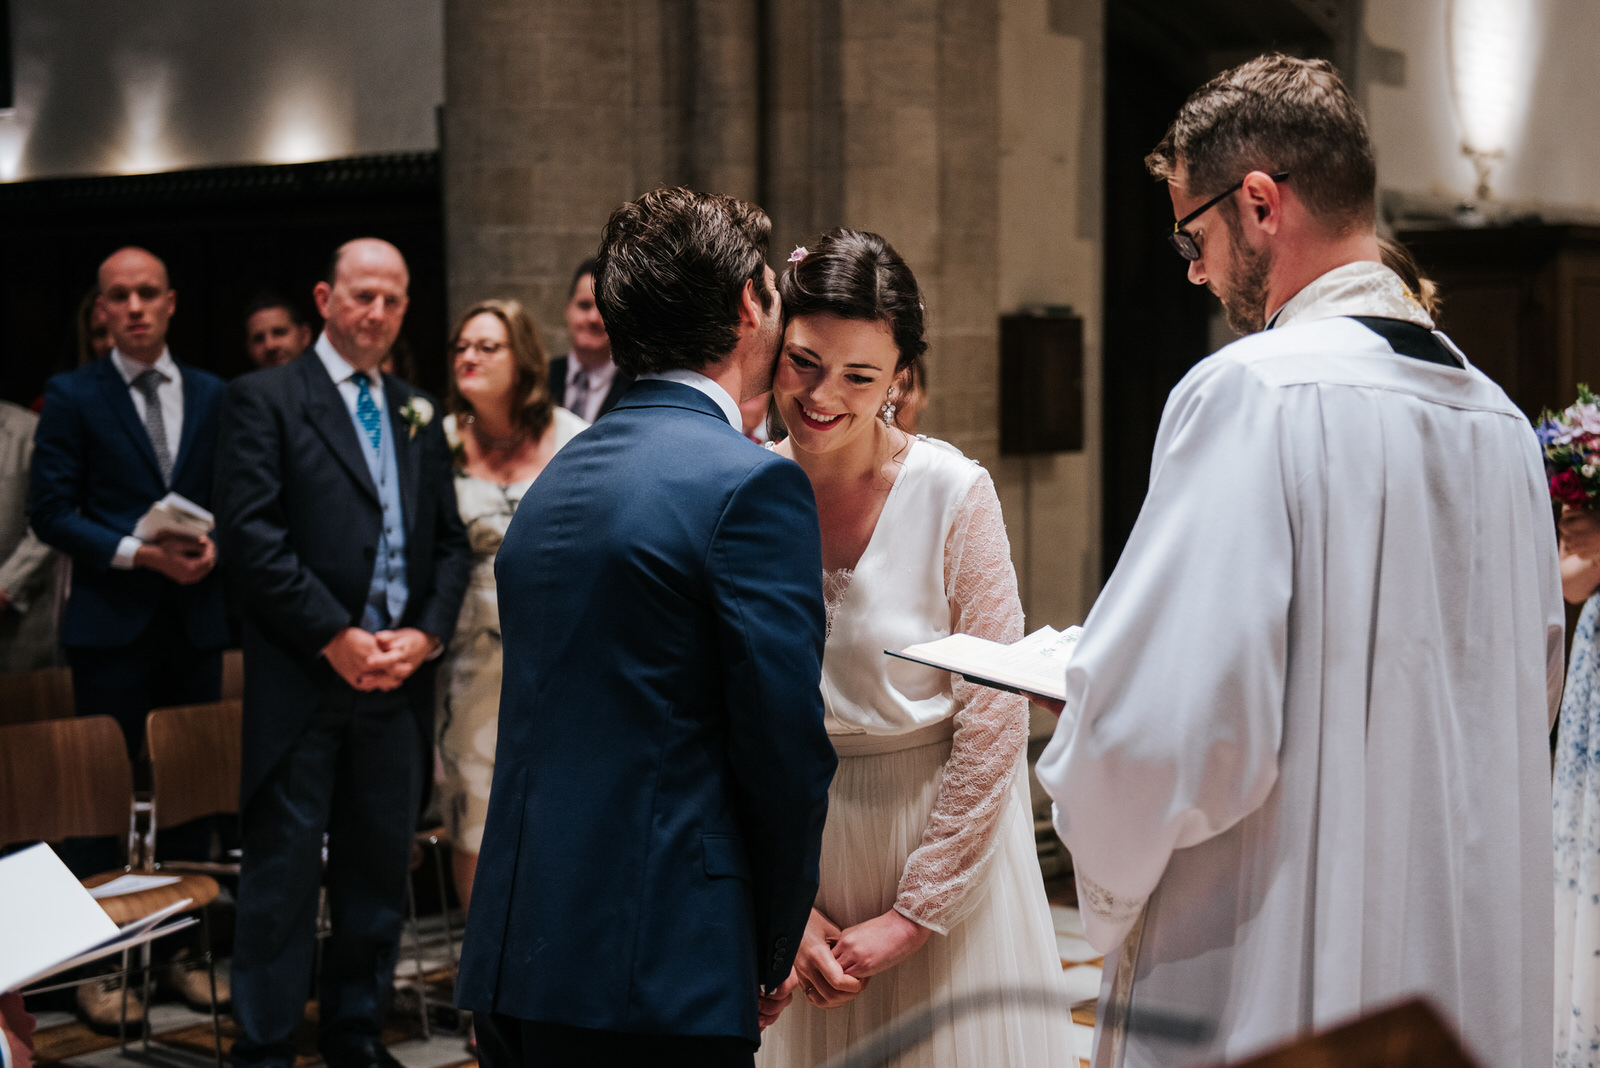 Groom embraces his Bride at the altar in Jesus College Chapel, C